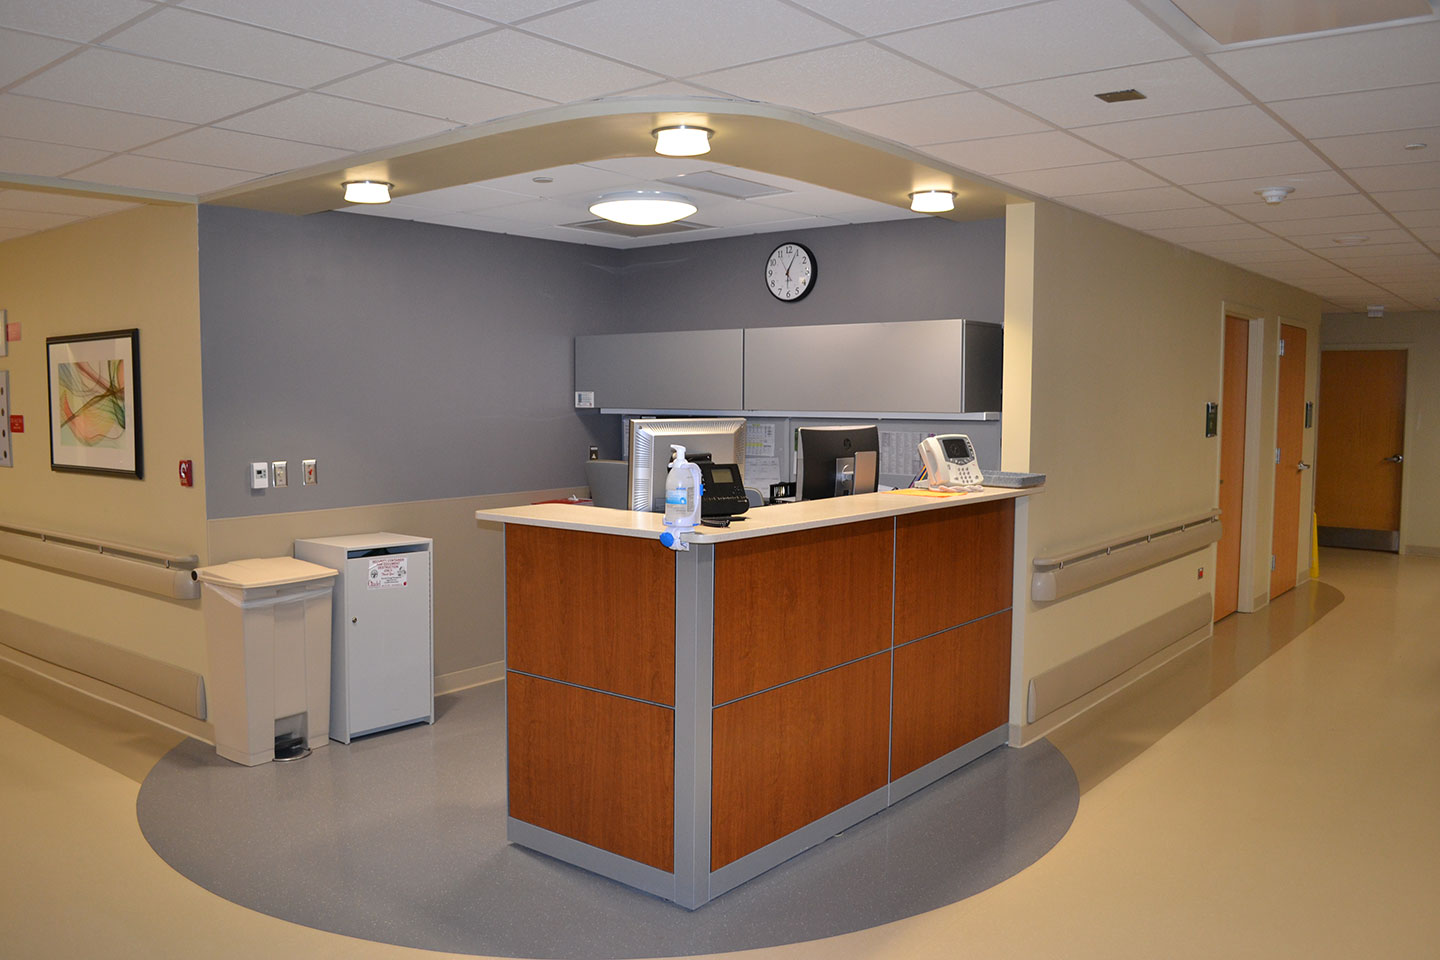 advocate-lutheran-genral-hospital-ir-expansion-11